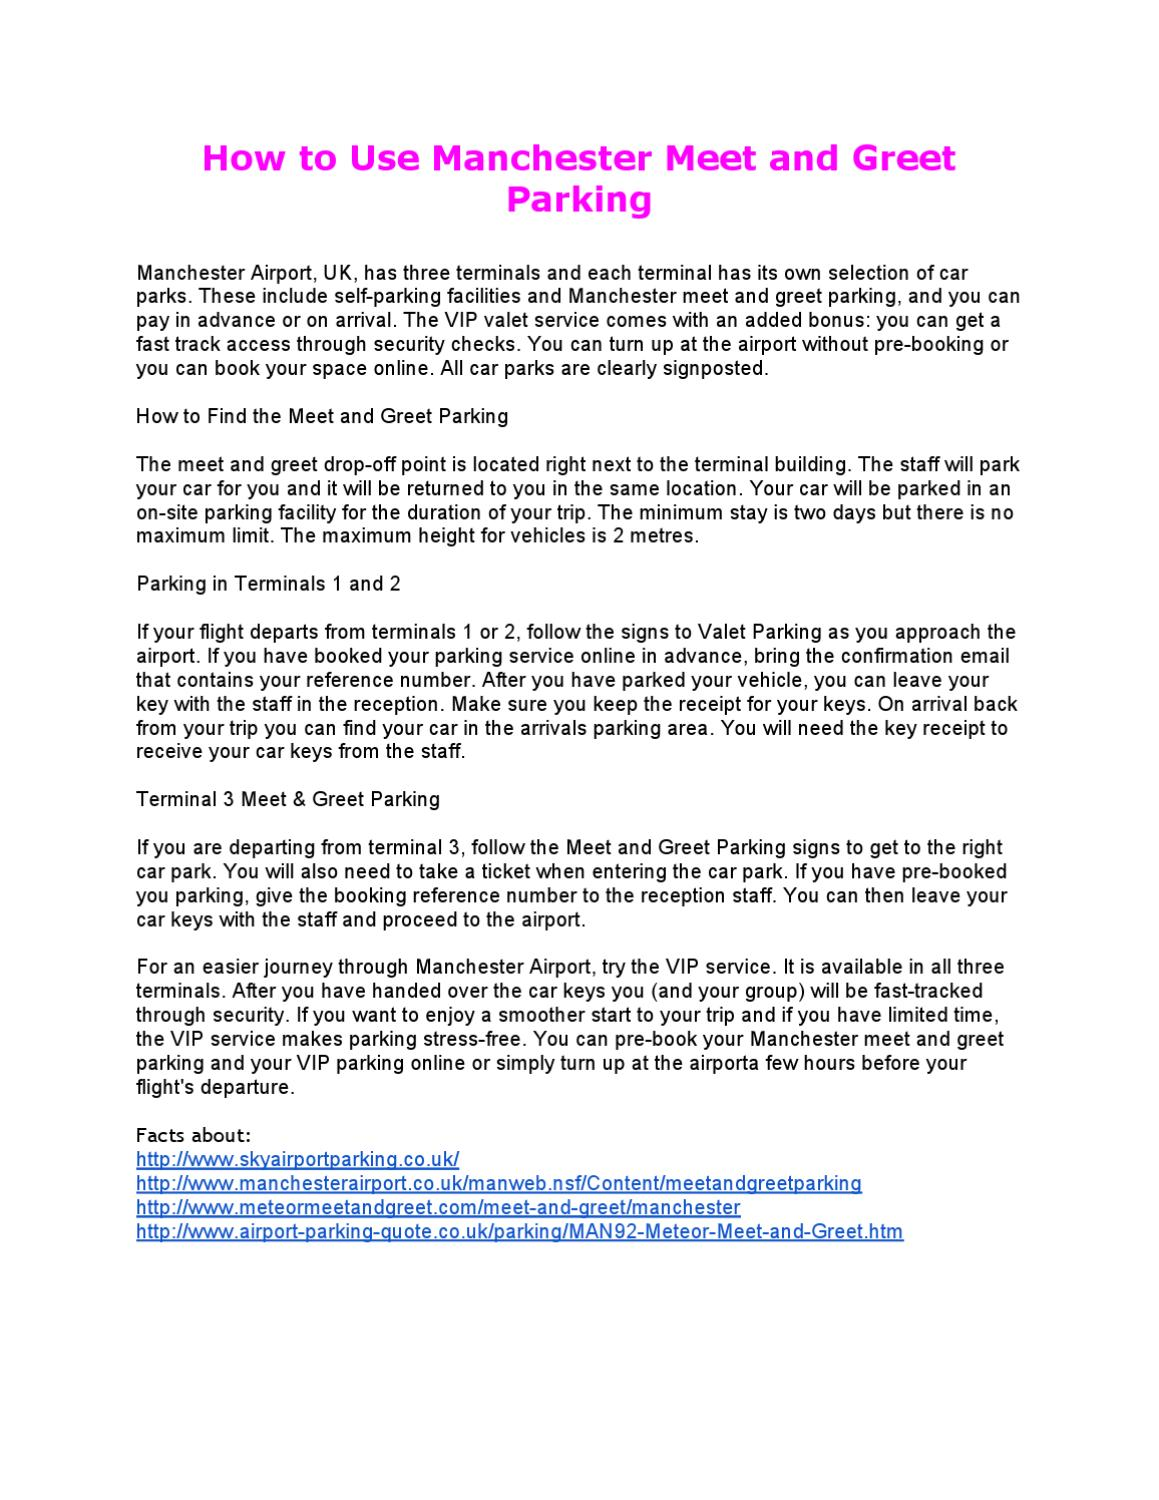 Manchester Meet And Greet Parking By Scott Ziebarth Issuu